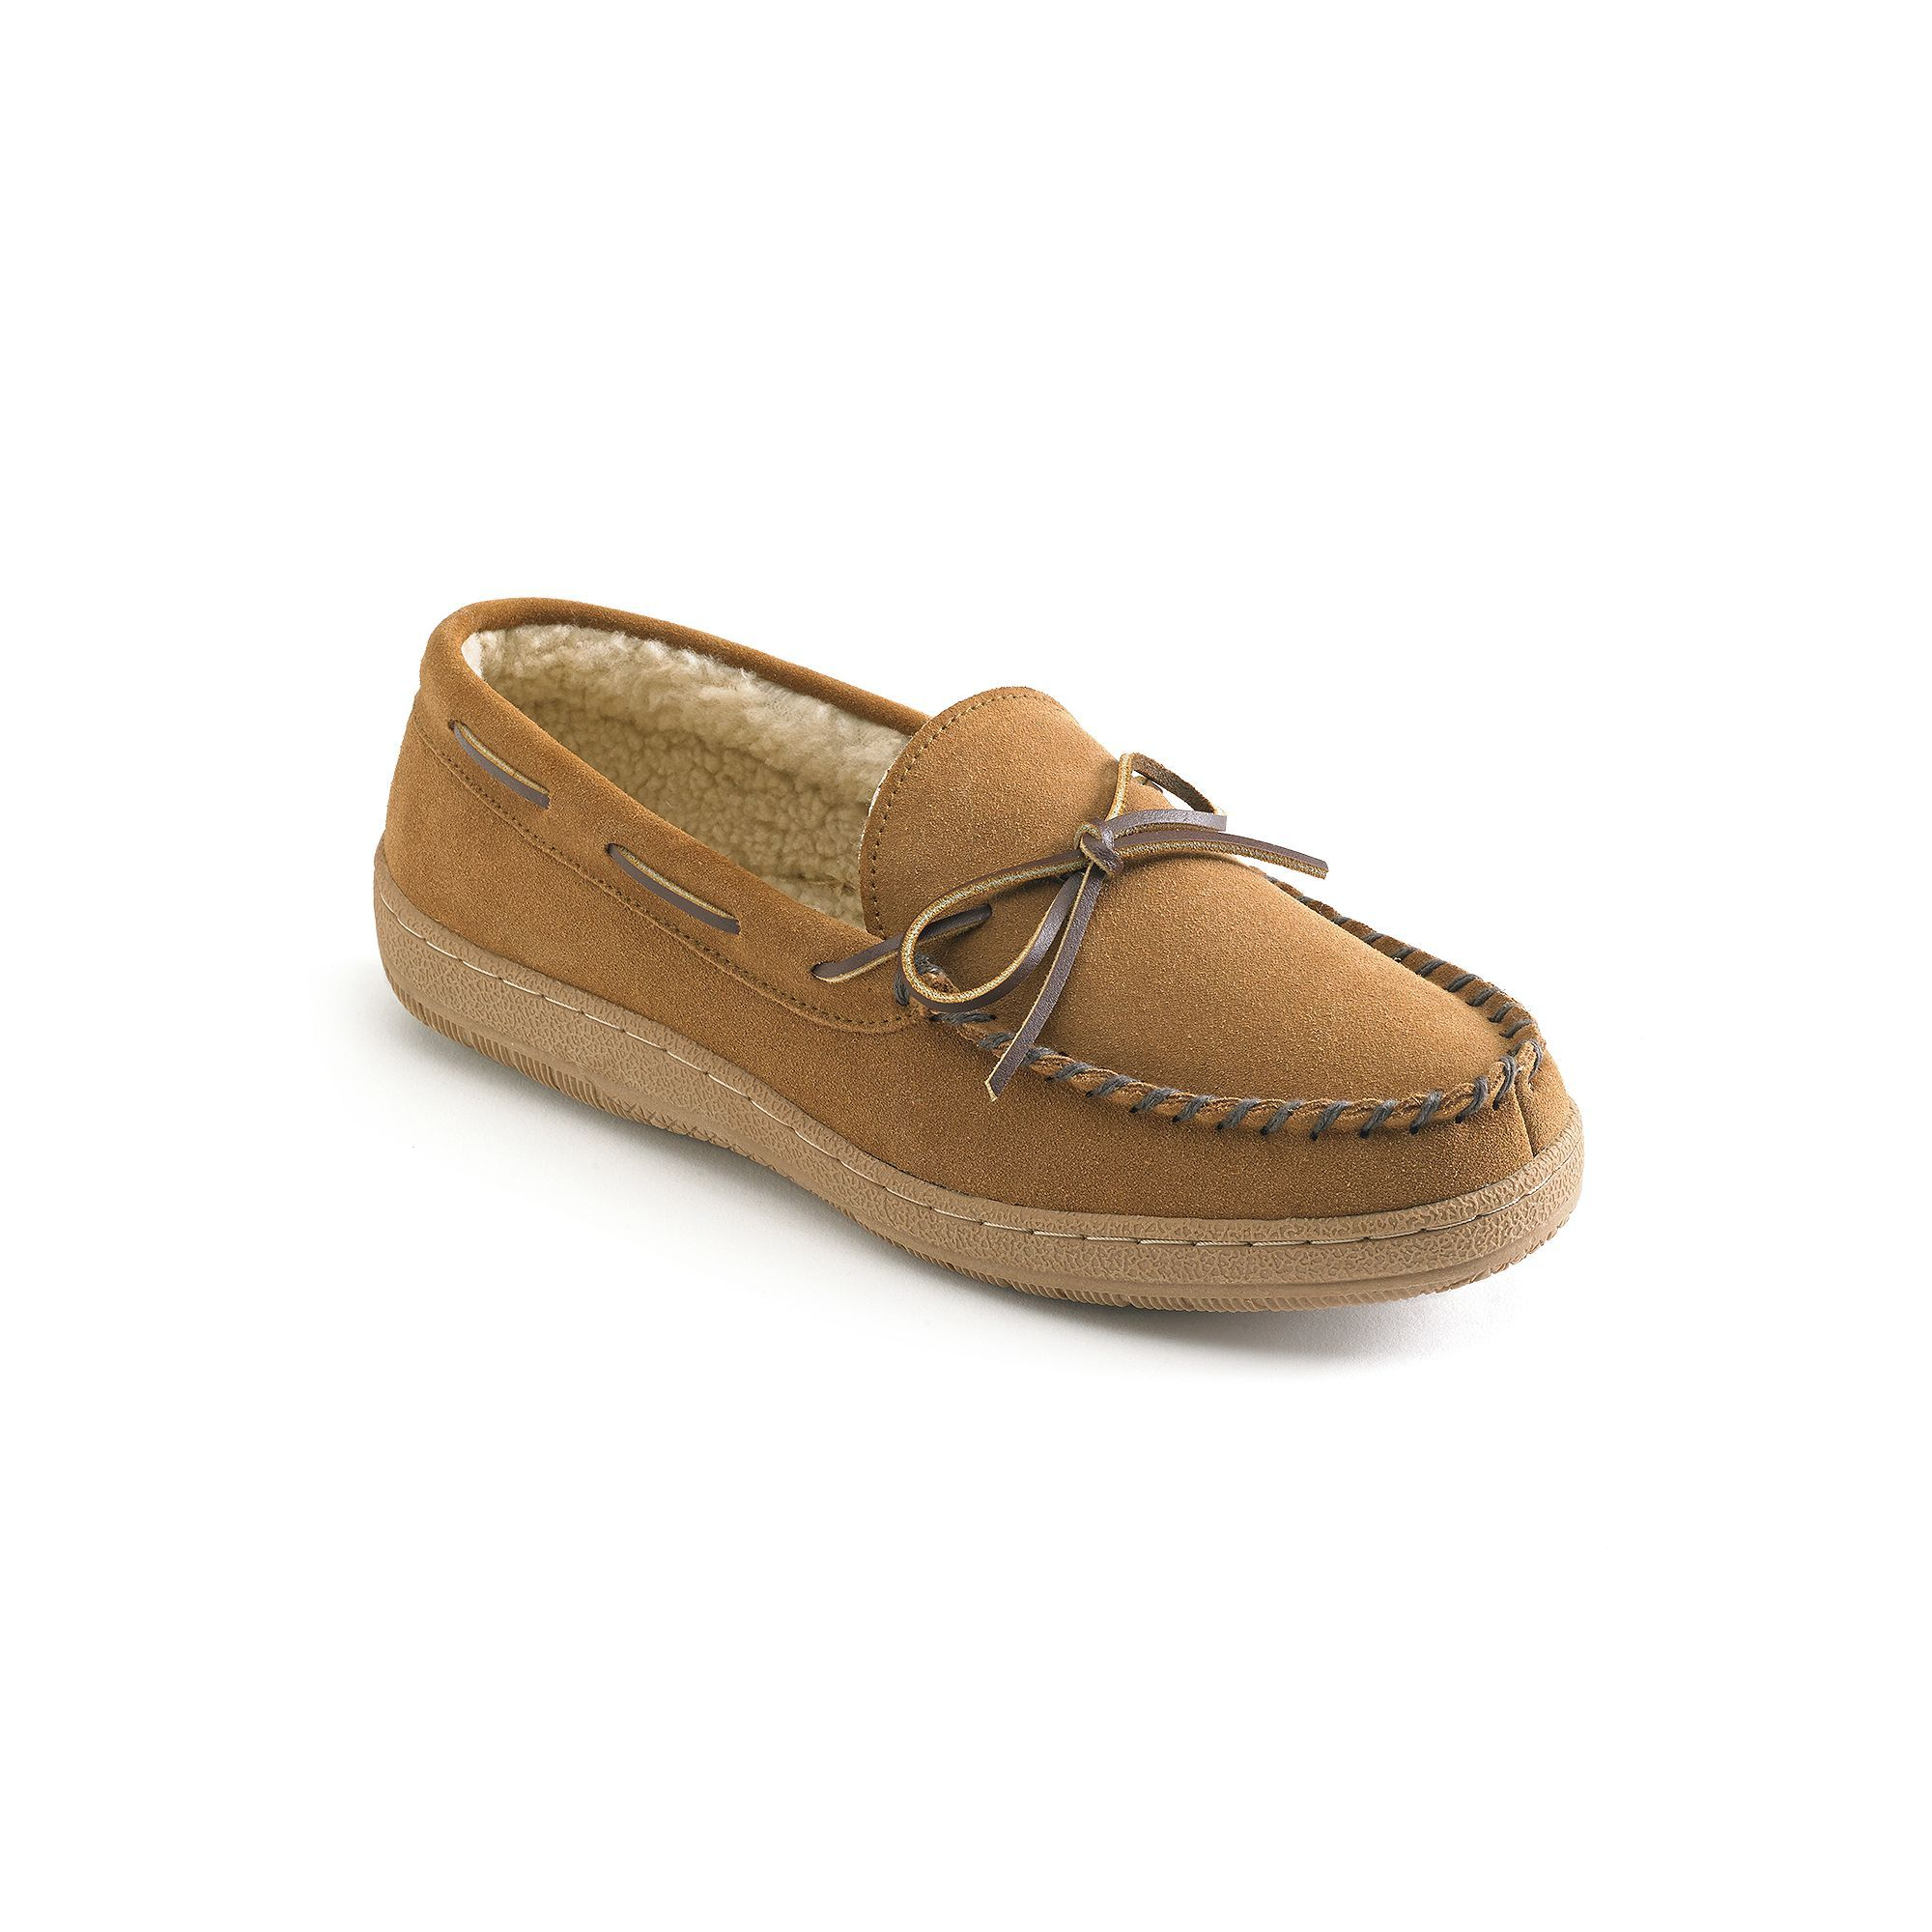 0e69f20878 Hideaways by L.B. Evans Morgan Men s Suede Moccasin Slippers